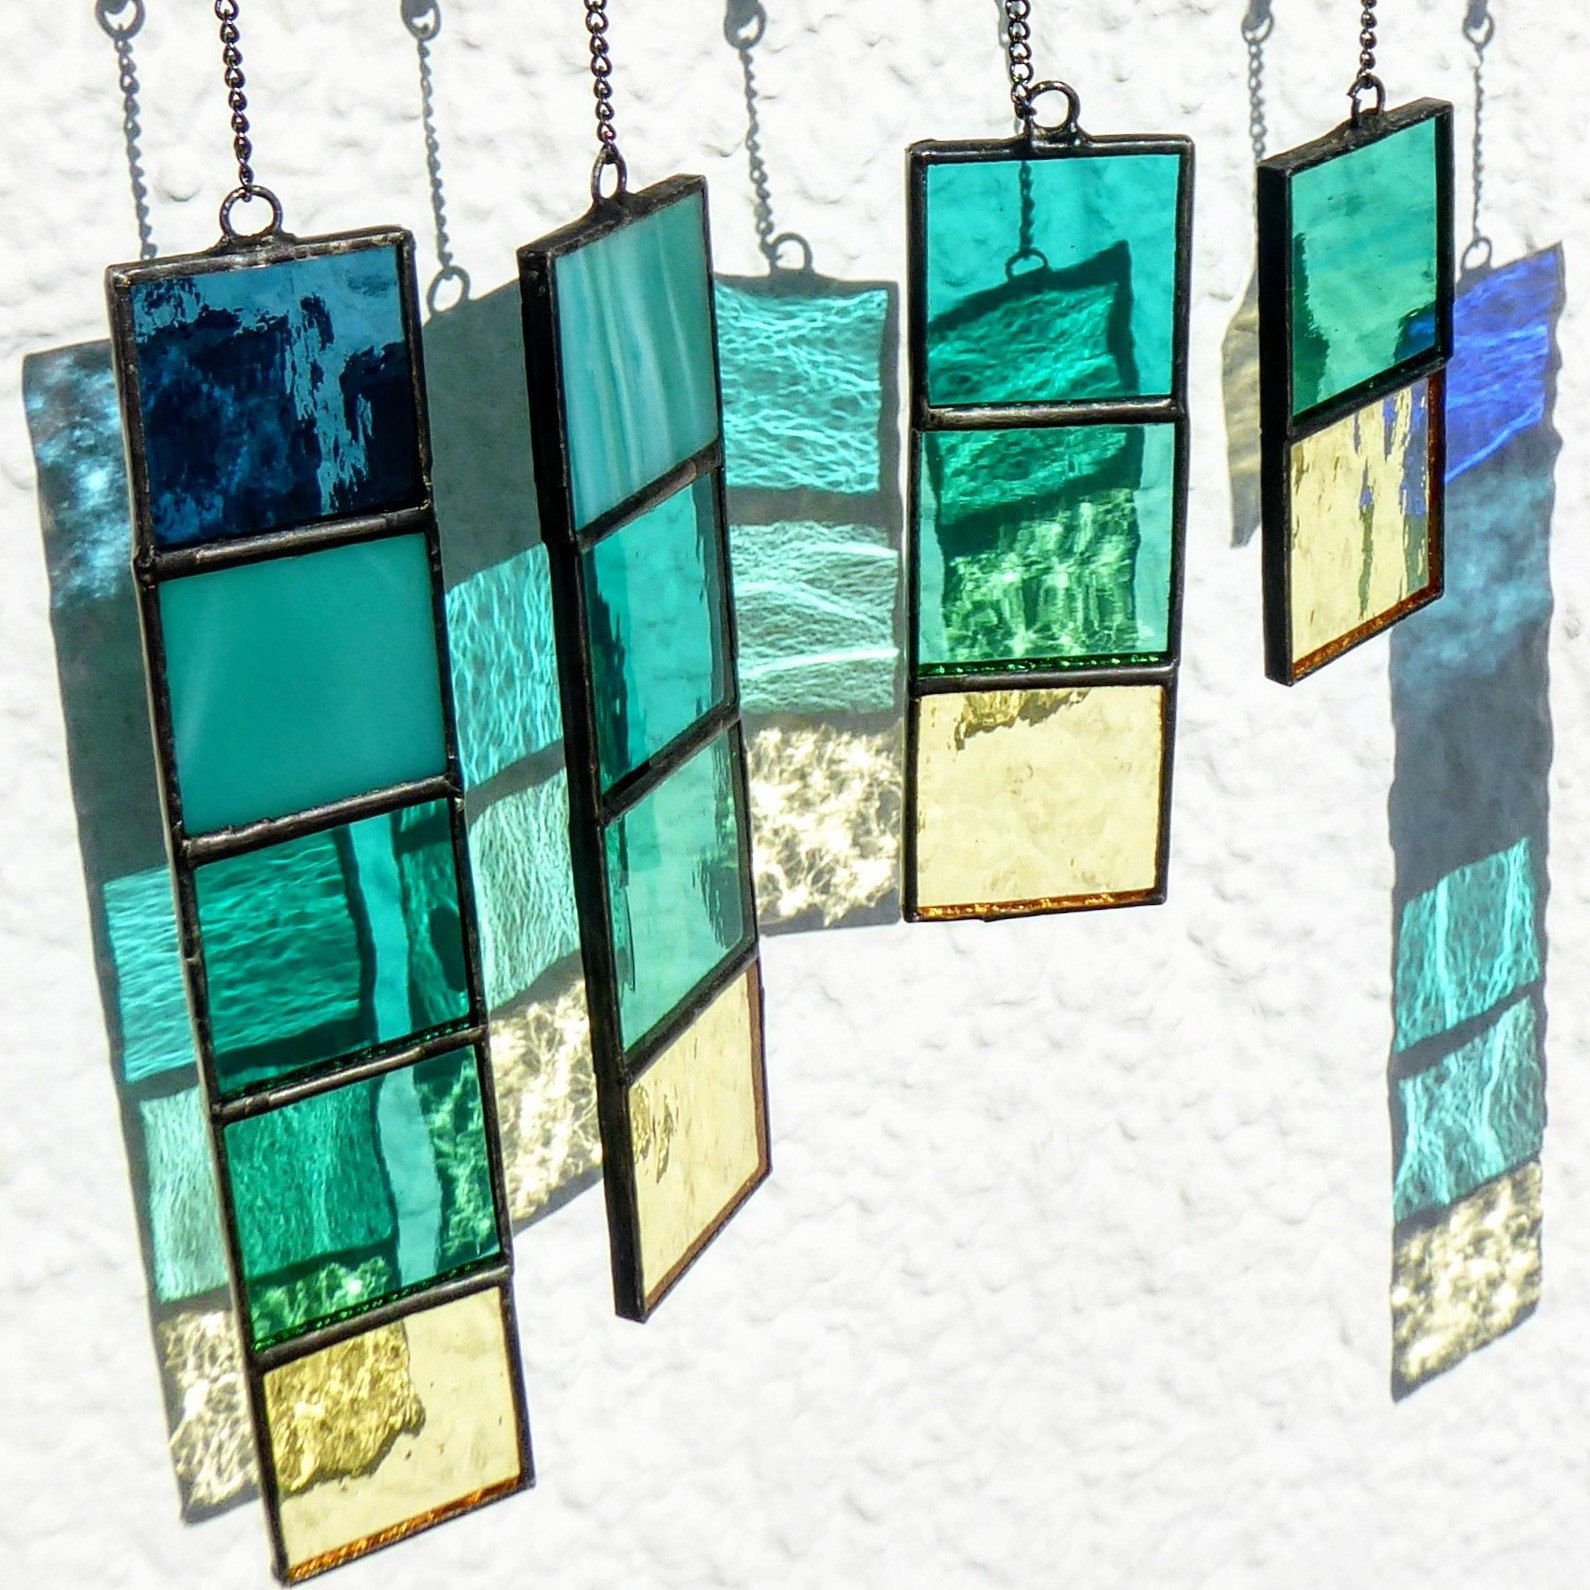 Stained glass sea hanging mobile suncatcher Christ